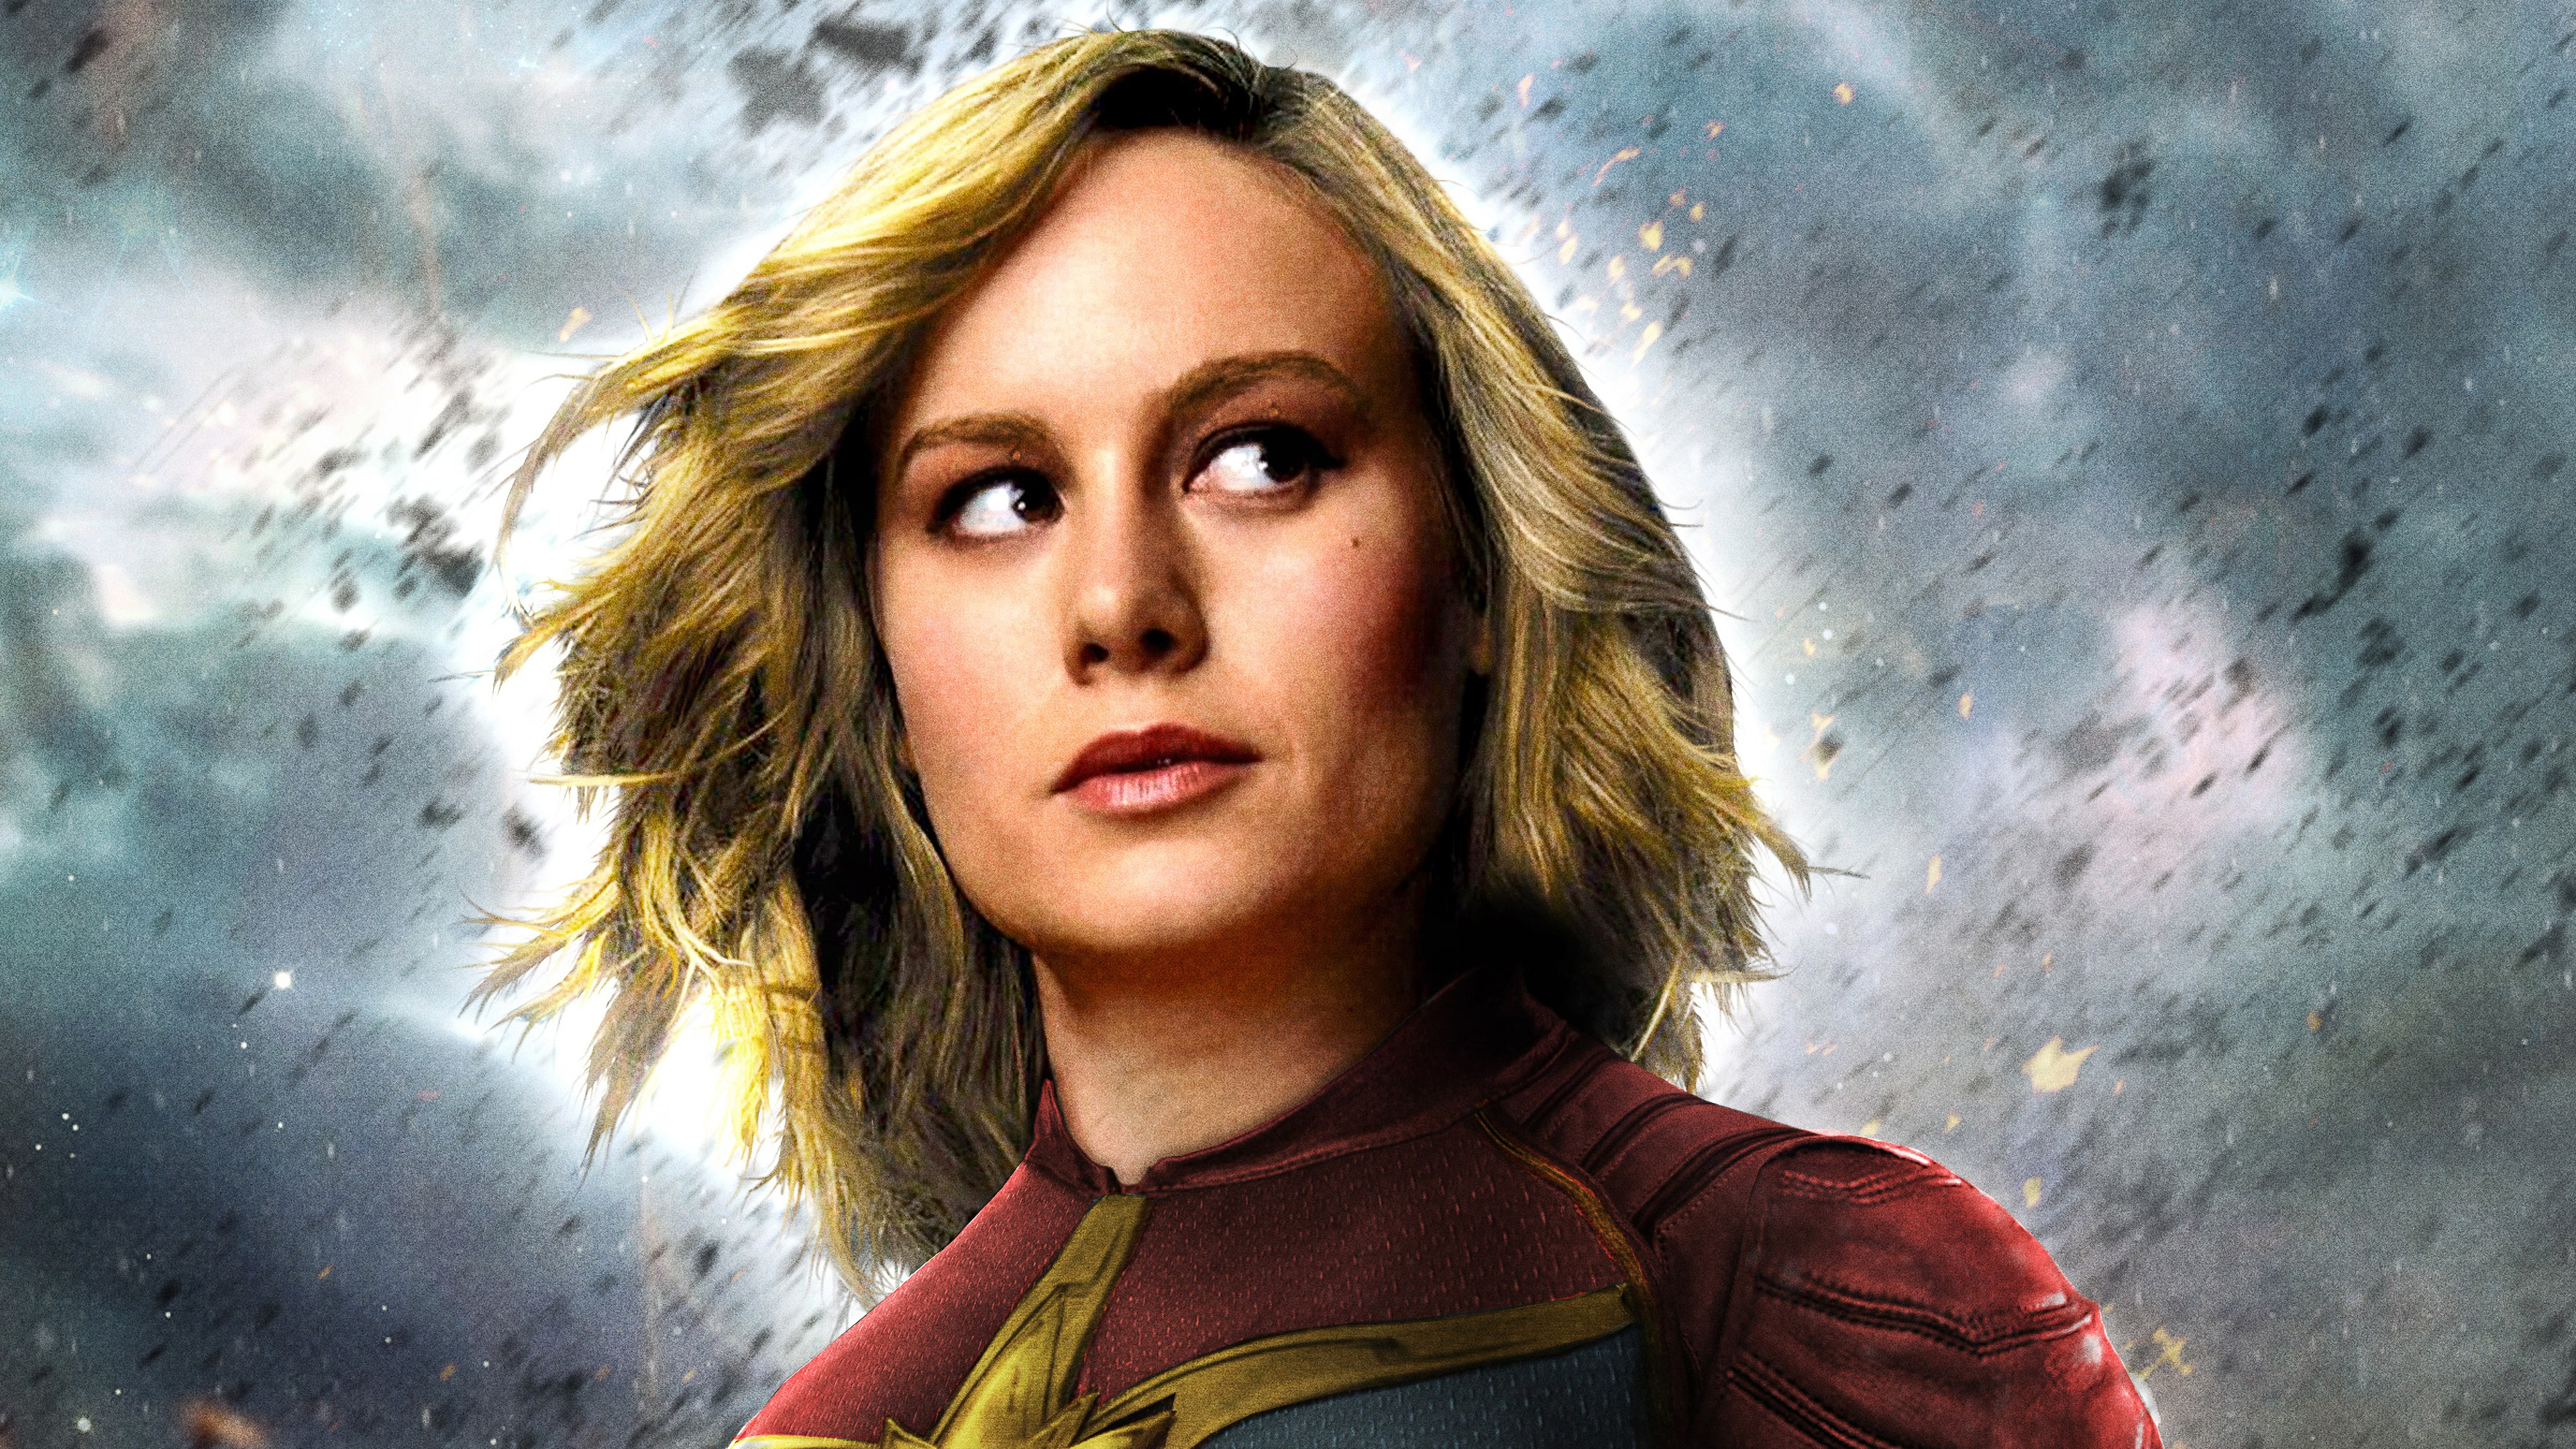 captain marvel movie 2019 brie larson as carol danvers 4k wallpaper 1544829439 - Captain Marvel Movie 2019 Brie Larson as Carol Danvers 4K Wallpaper - Captain Marvel (Movie 2019), Captain Marvel (Carol Danvers)